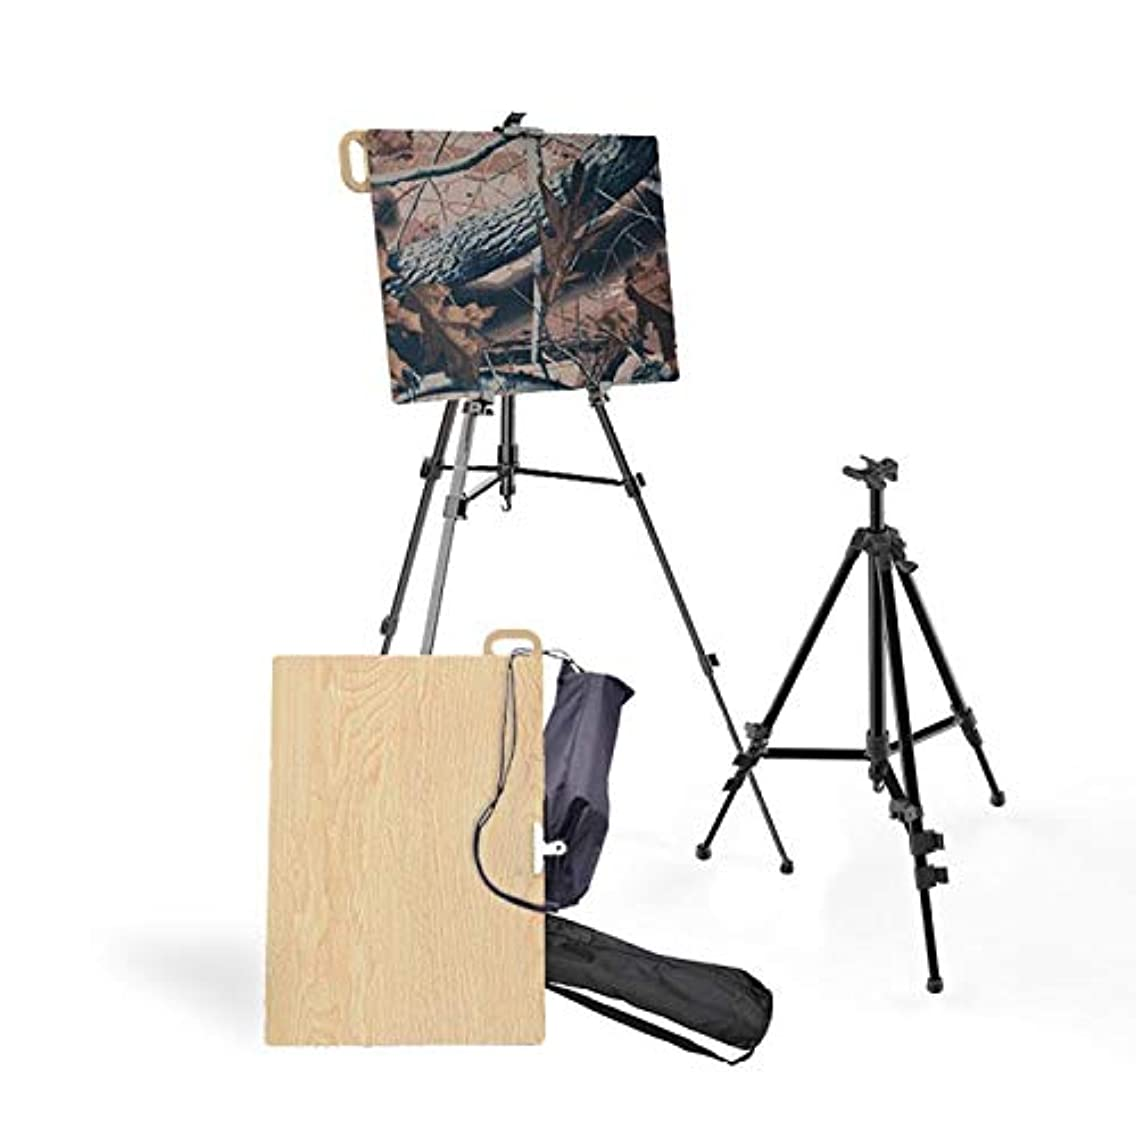 Yiwulood Artist Easel Display Stand with Foldable Wooden Artboard(16 x 22)Tripod Display Easel 21